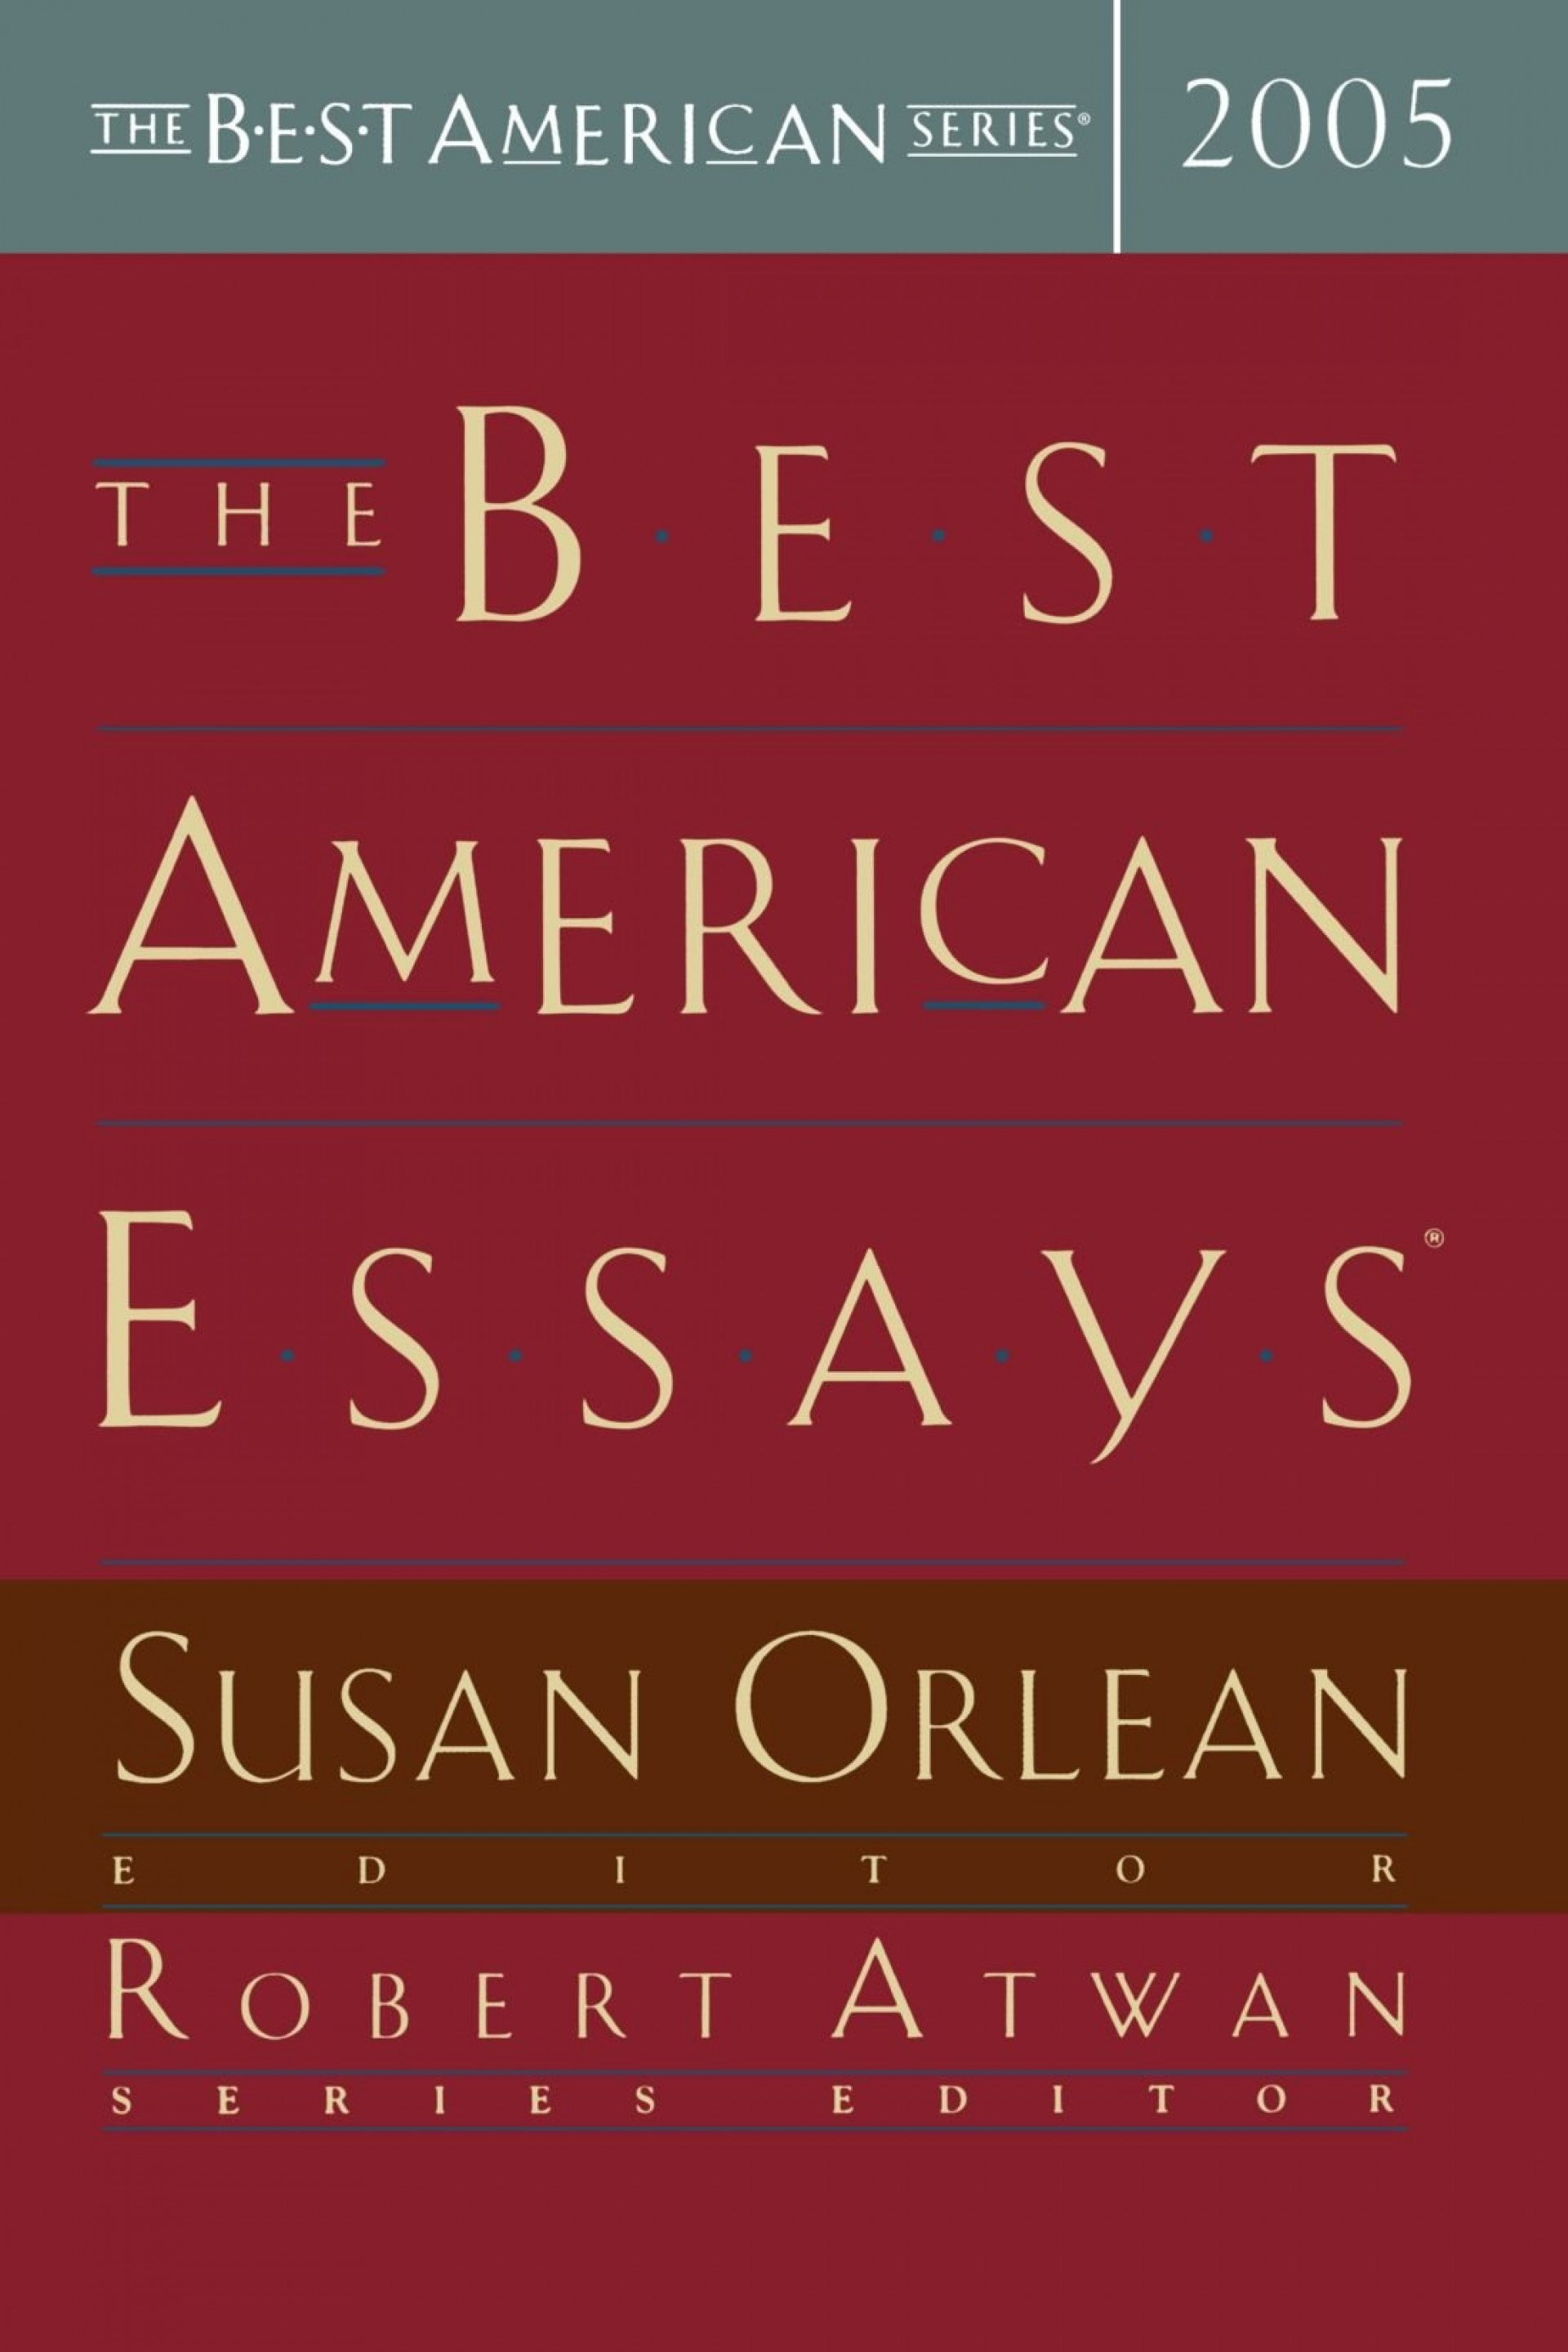 010 Essay Example Best American Essays Striking 2017 Table Of Contents The Century Pdf 1920